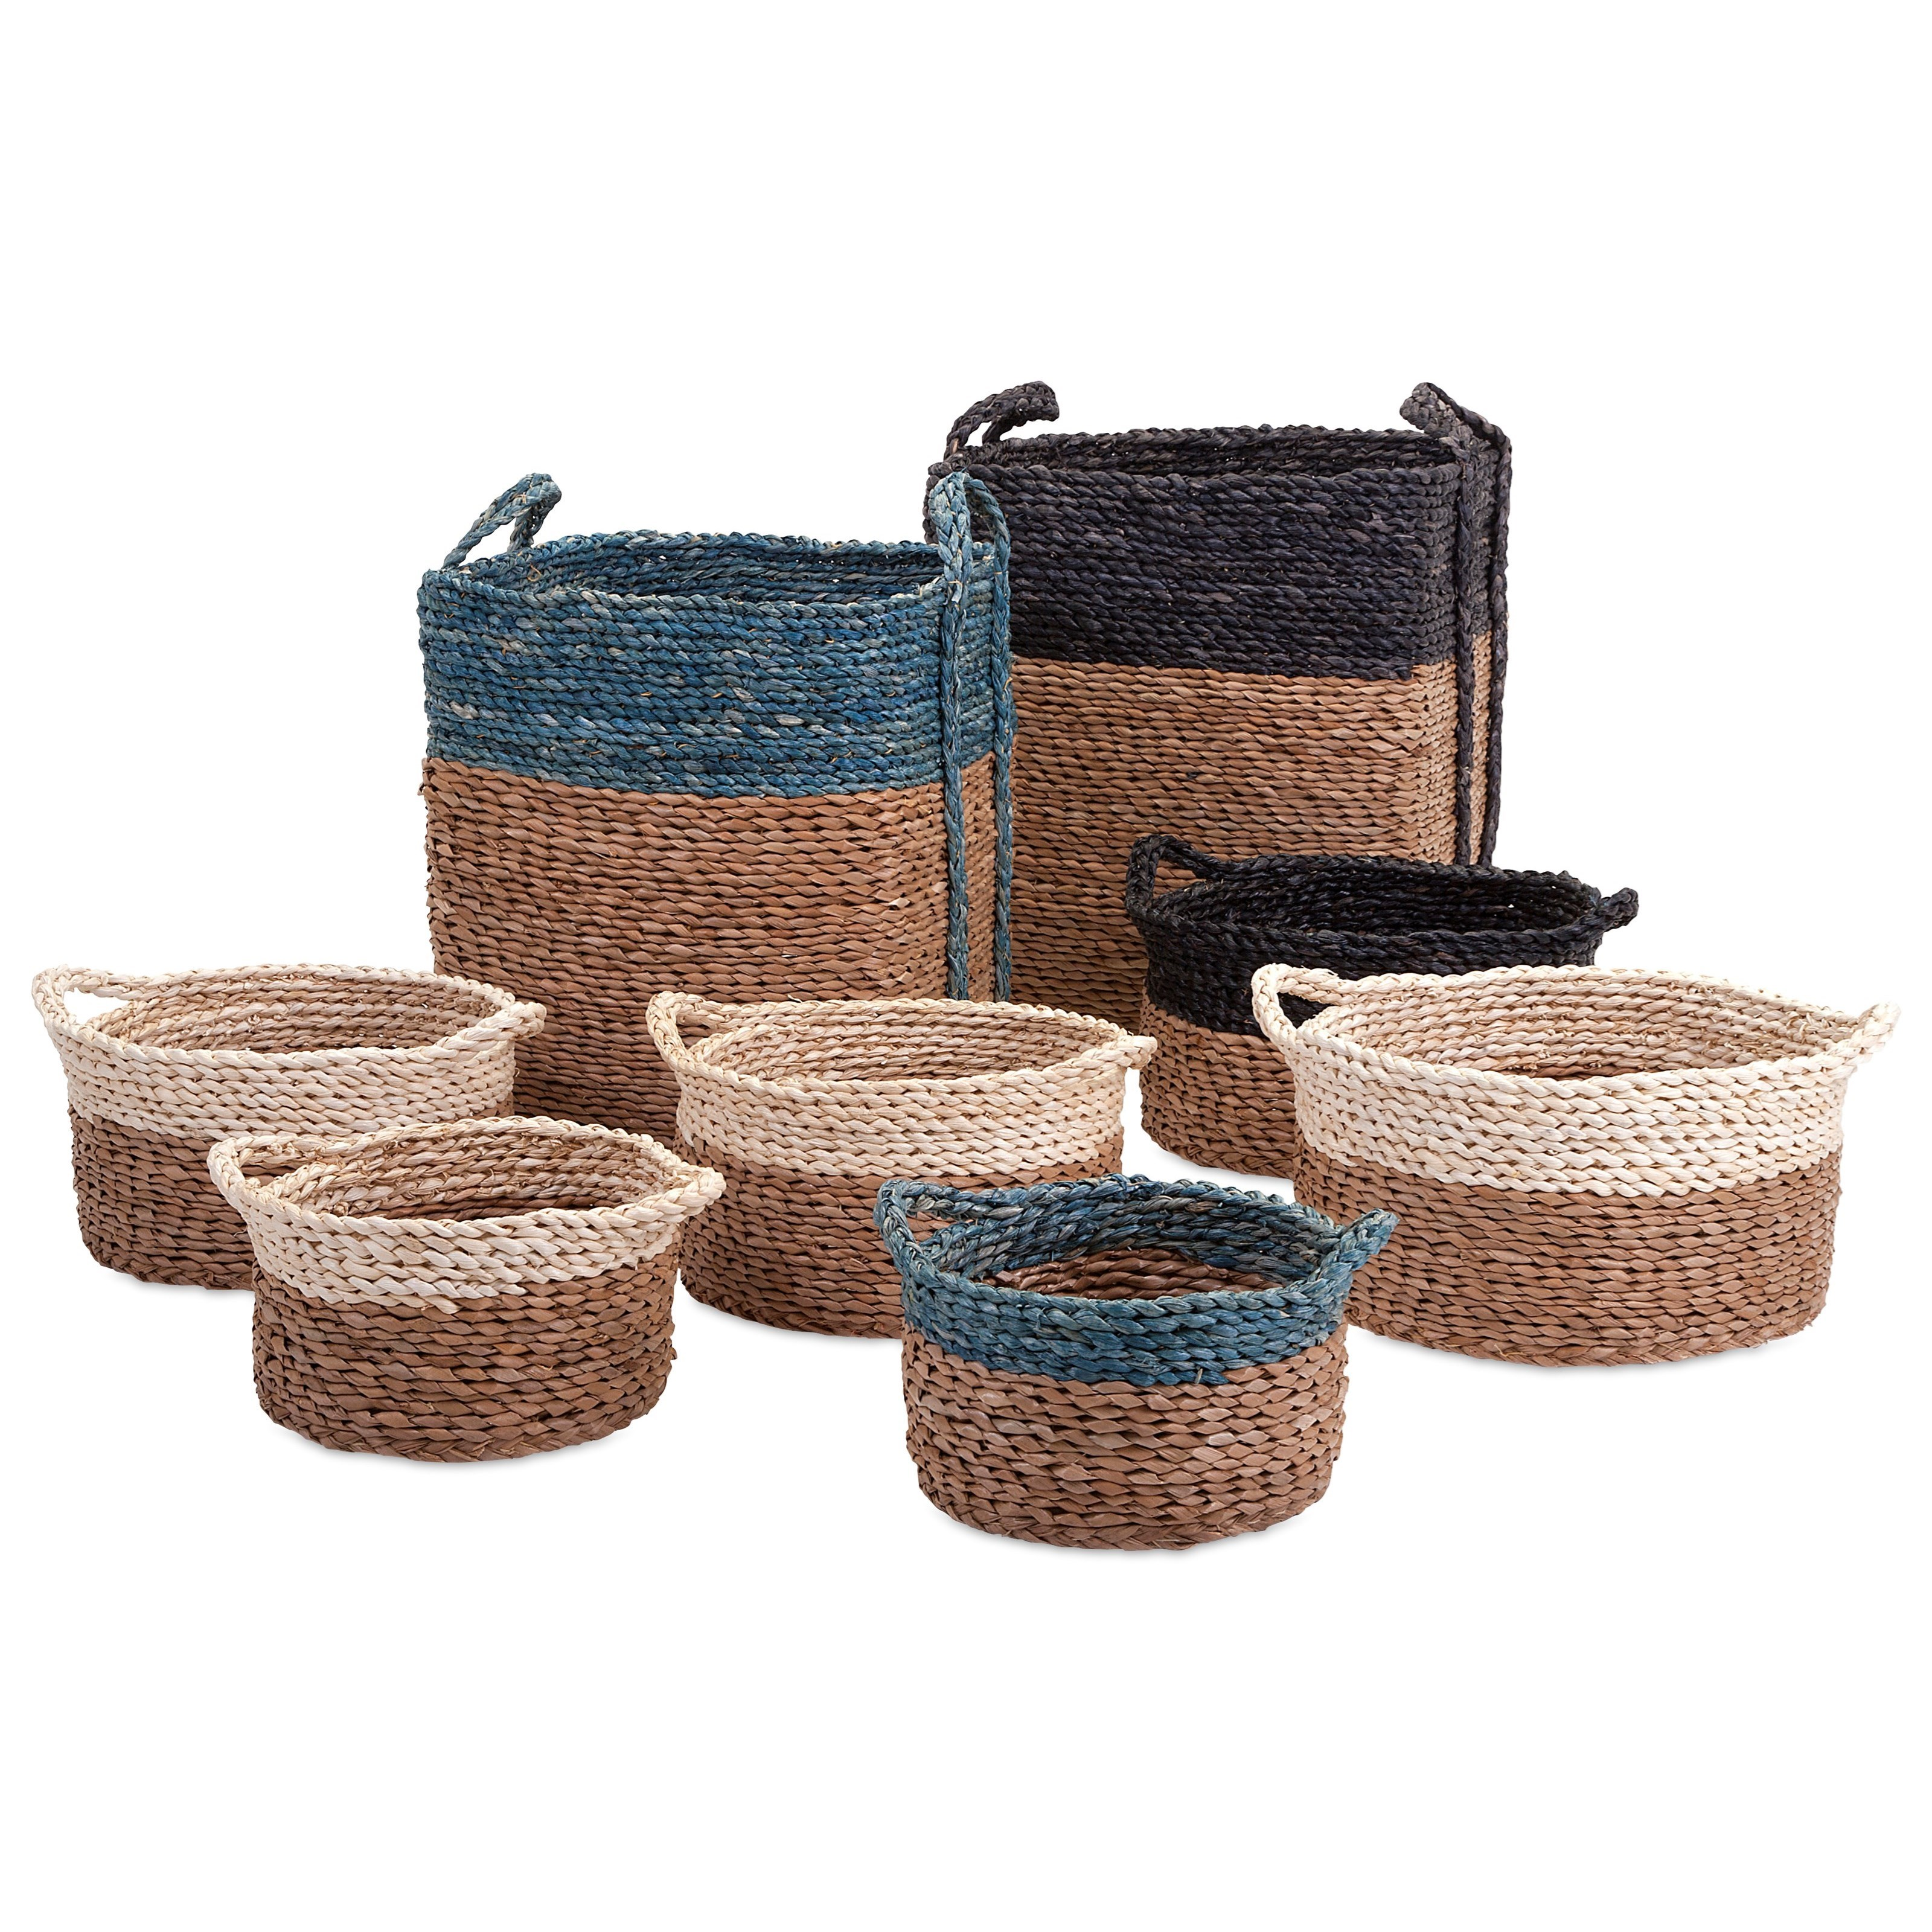 Baskets Bennet Woven Baskets - Set of 8 by IMAX Worldwide Home at Alison Craig Home Furnishings